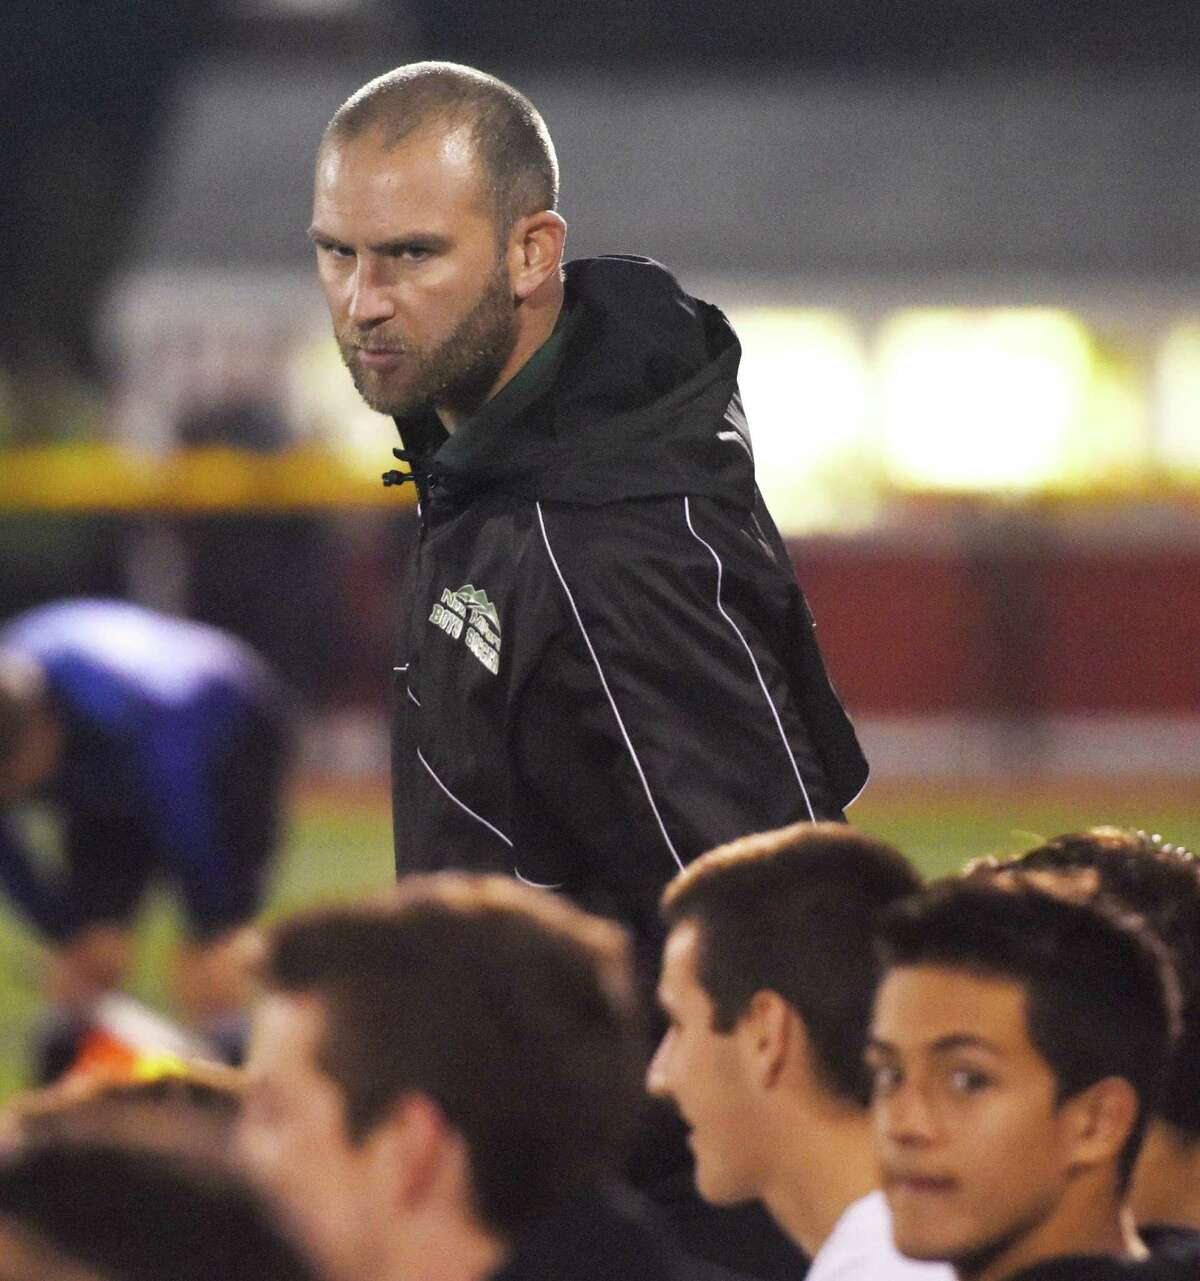 New Milford coach Antony Howard talks with his team in Joel Barlow's 4-0 win over New Milford in the SWC high school boys soccer semifinal game at Penders Field in Stratford, Conn. Tuesday, Oct. 28, 2014.